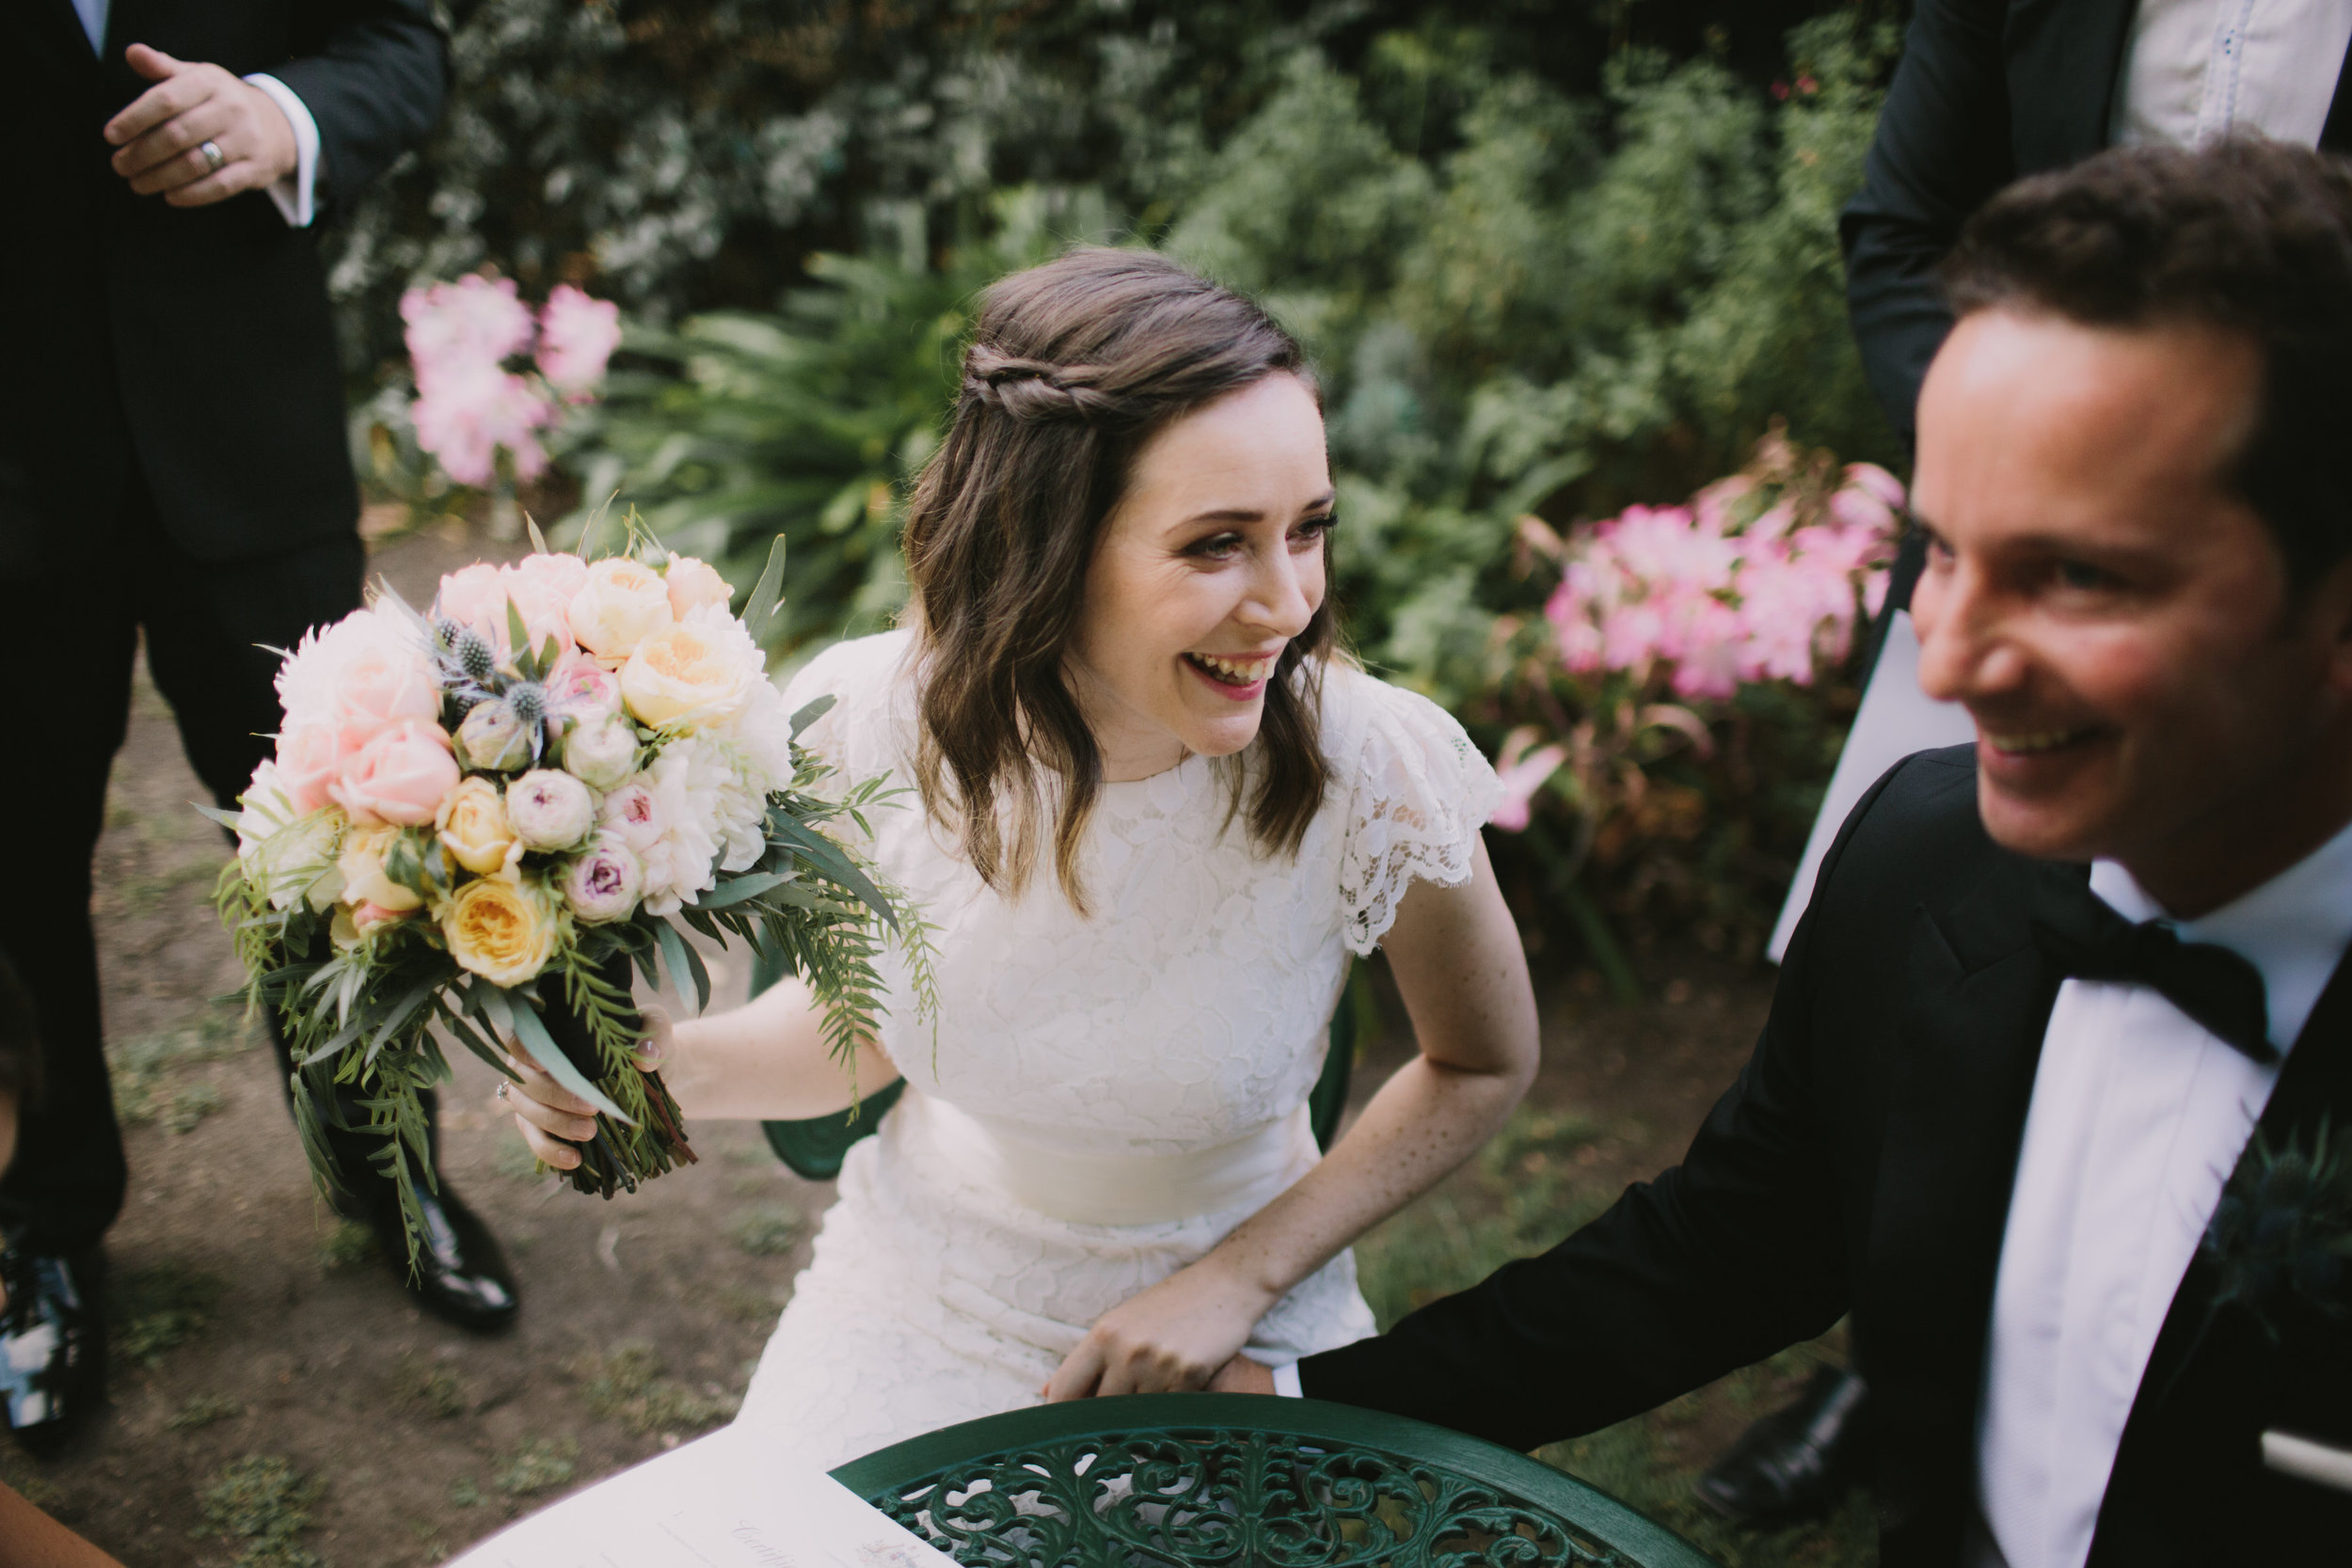 Briony + Brett - Photography by I Got You Babe Weddings